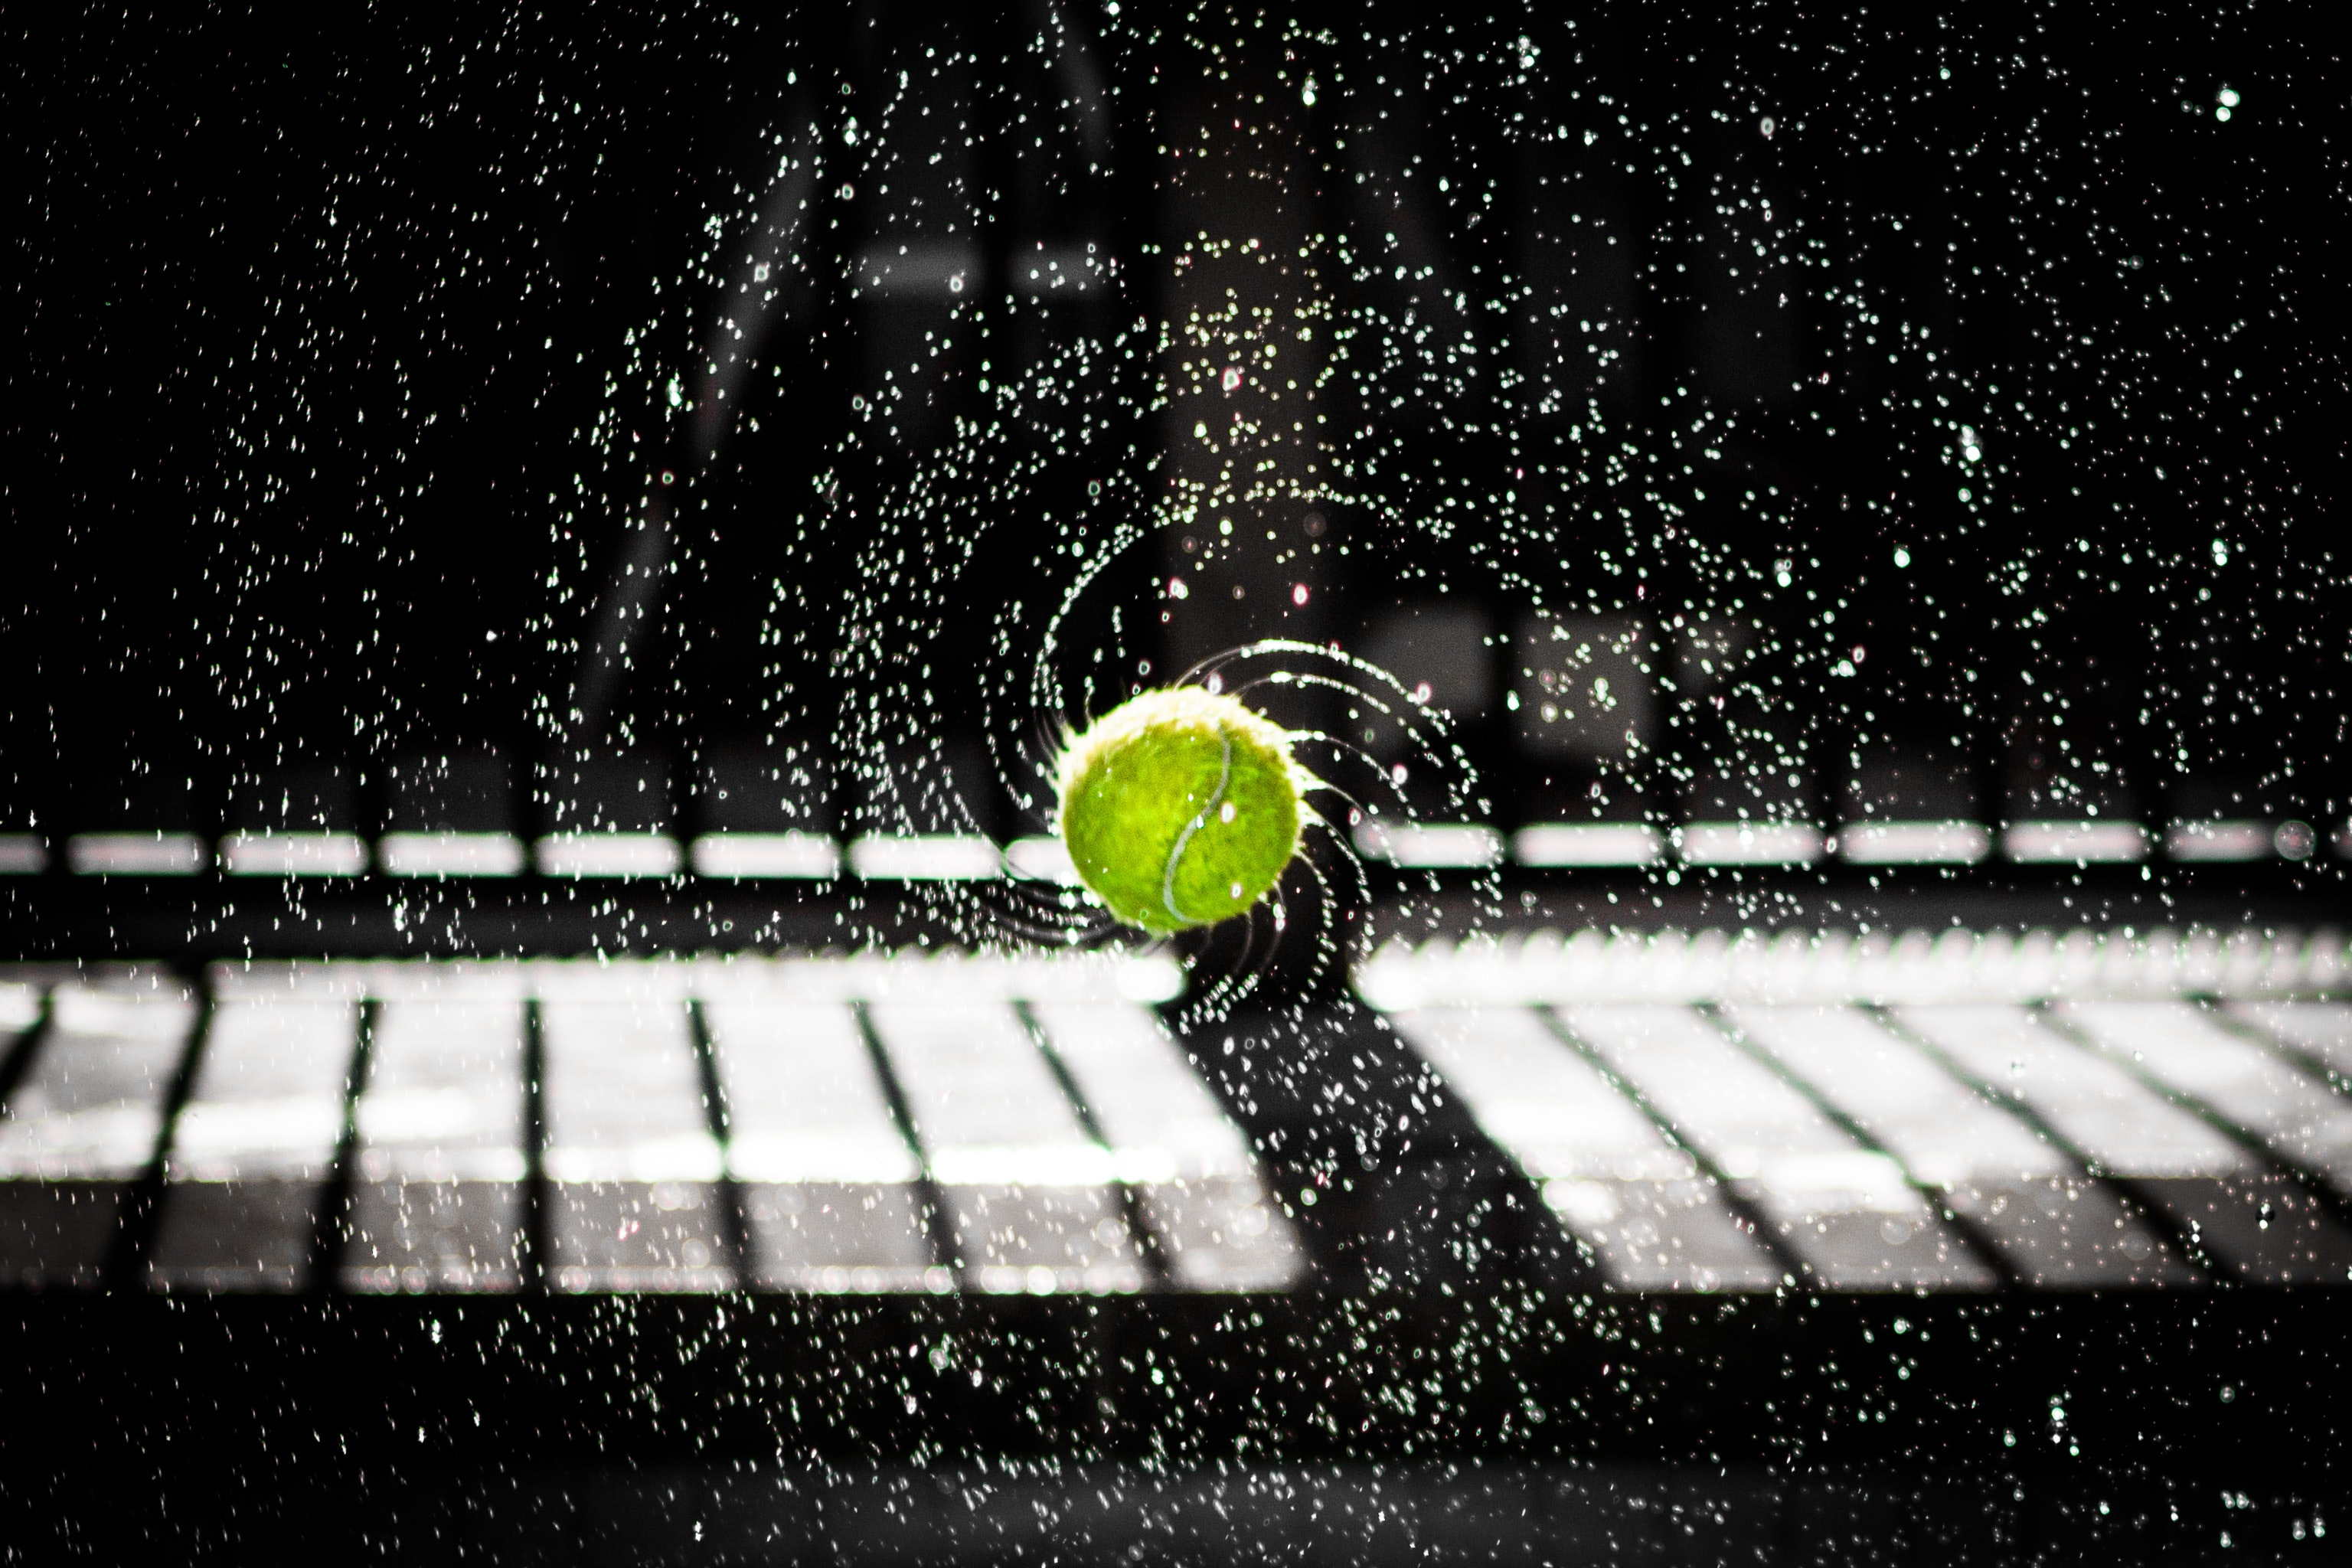 Wet tennis ball spinning with the water spraying off